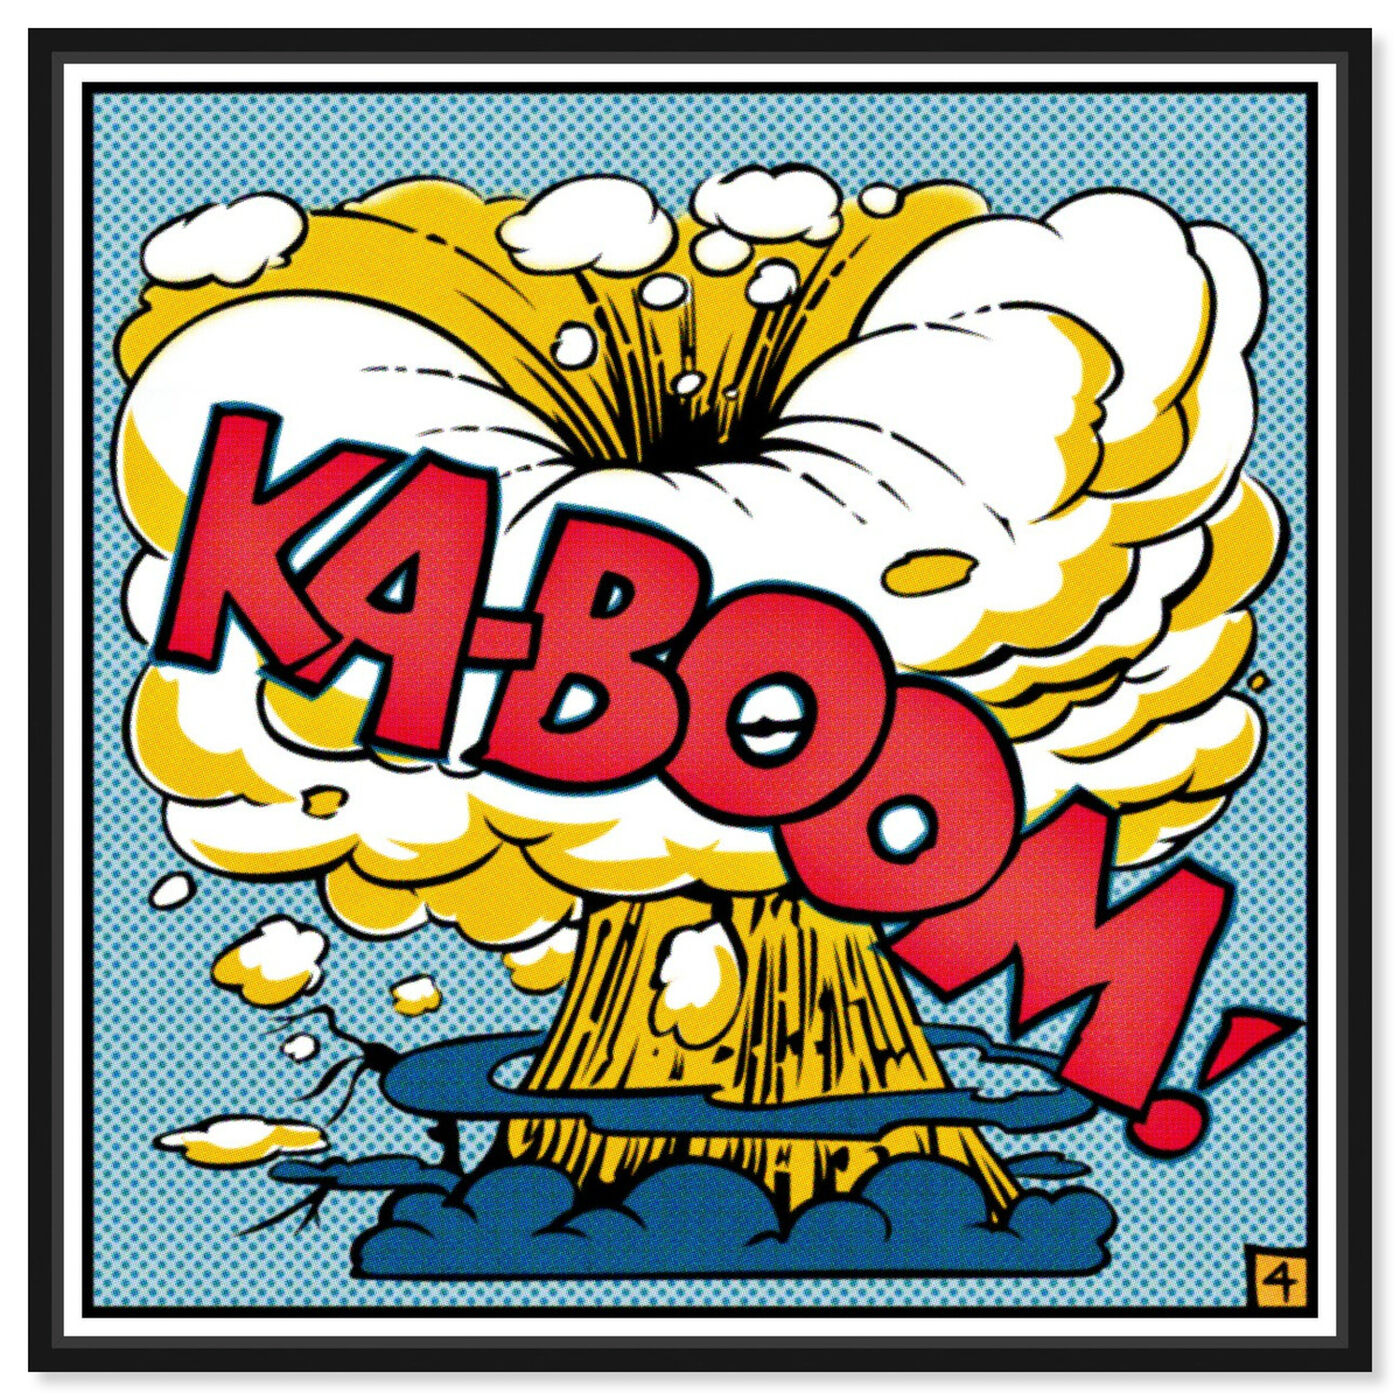 Front view of Ka-Boom featuring advertising and comics art.